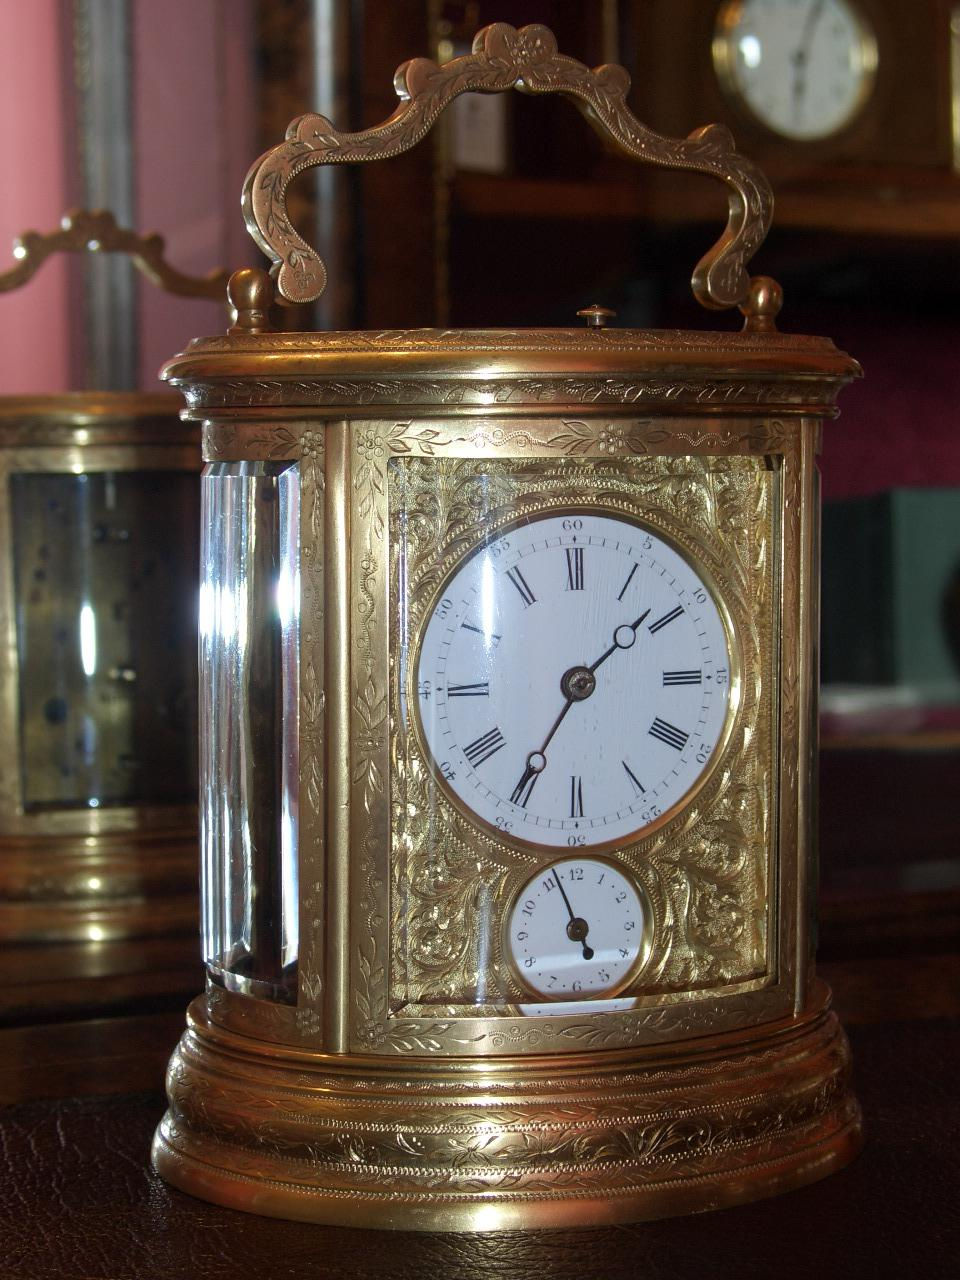 Drocourt carriage clock